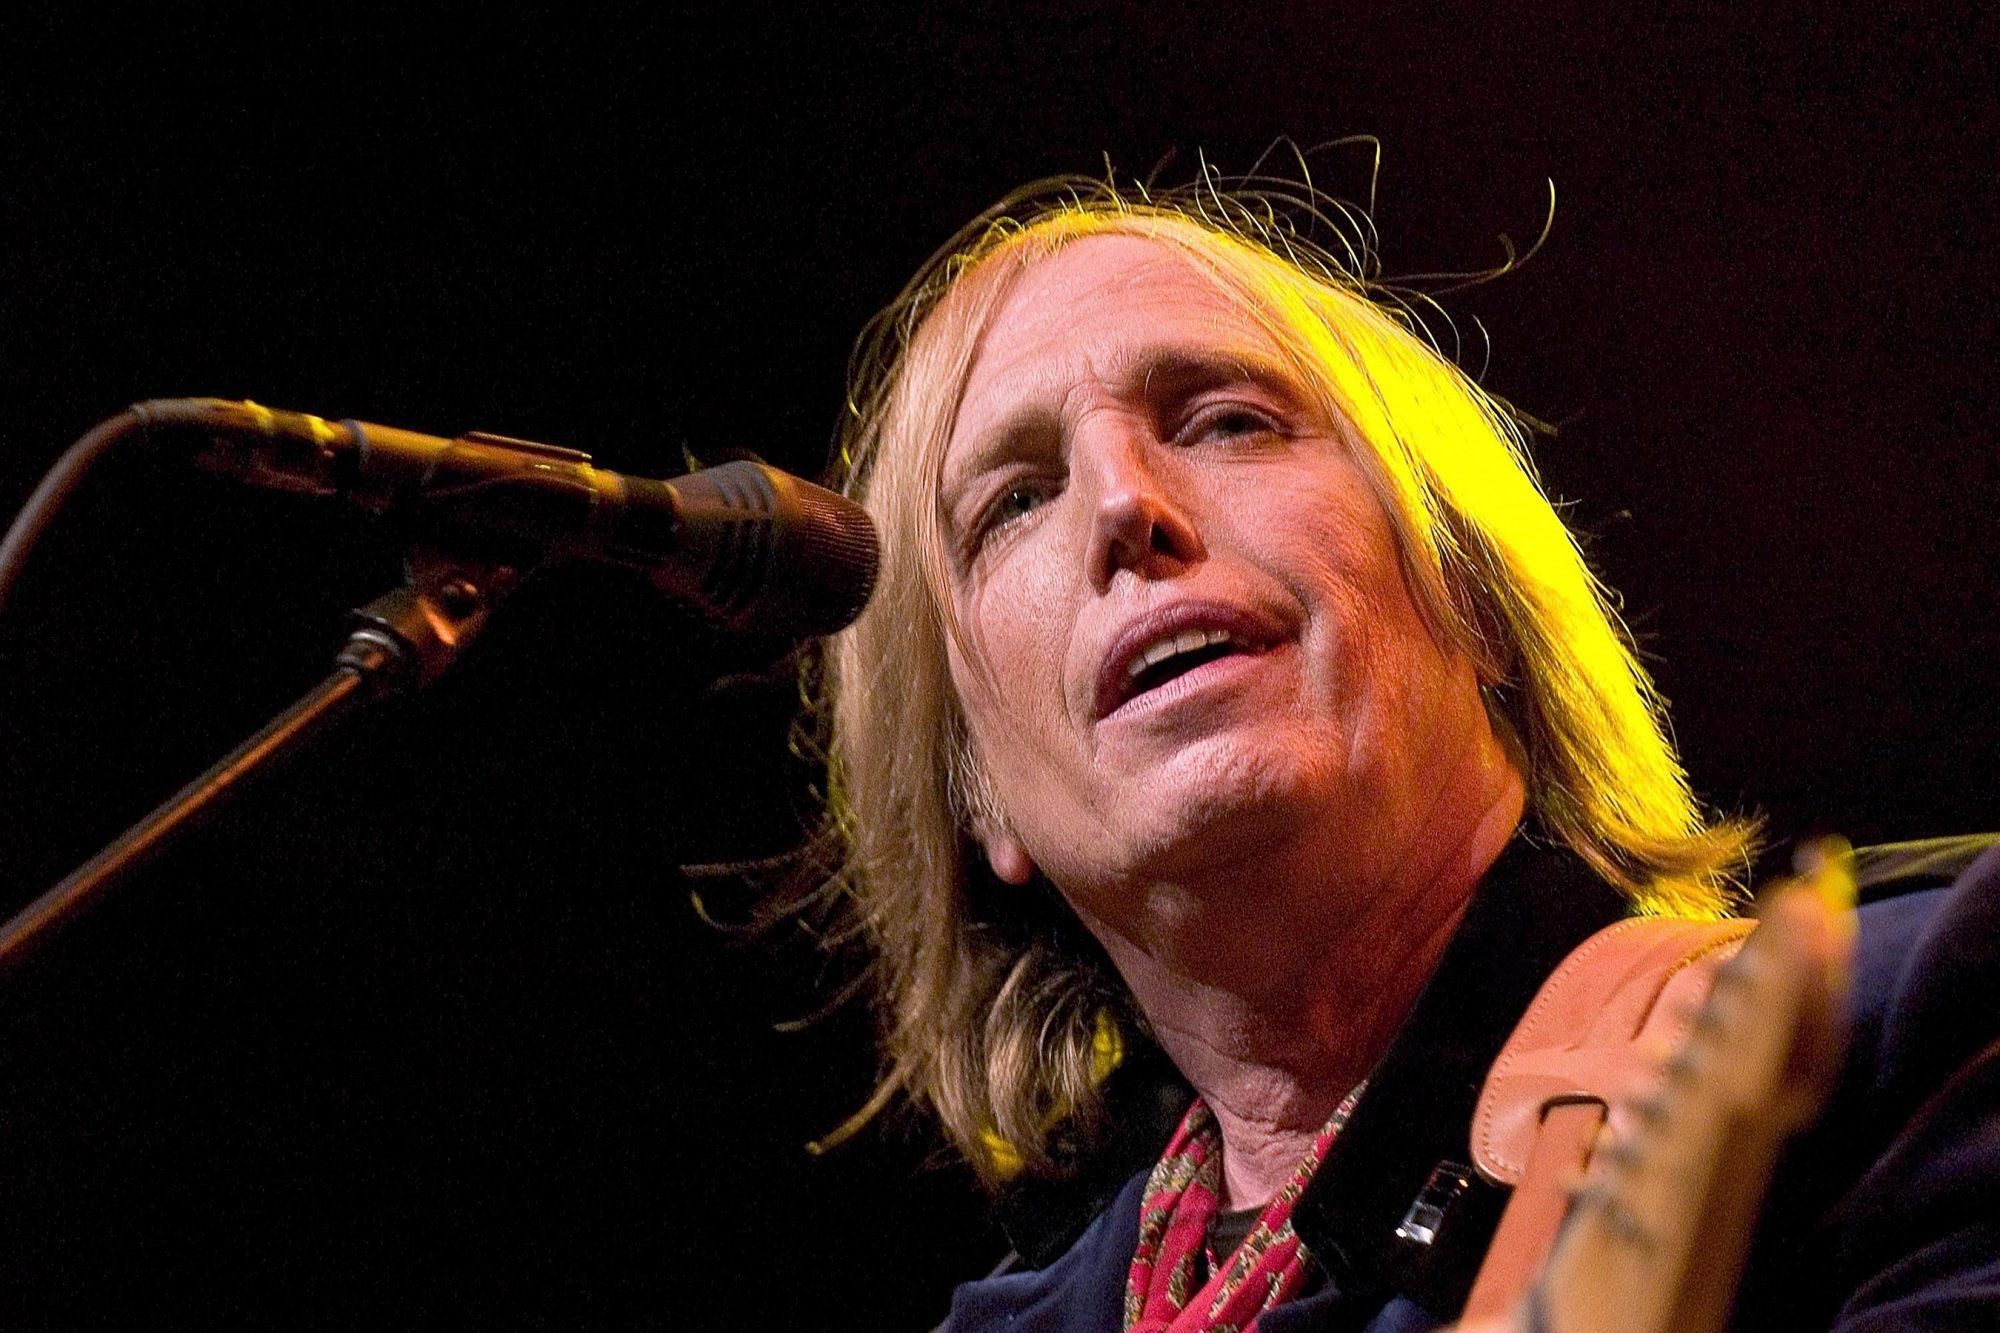 Tom Petty & The Heartbreakers in Concert at Tweeter Center in Tinley Park - July 15, 2005